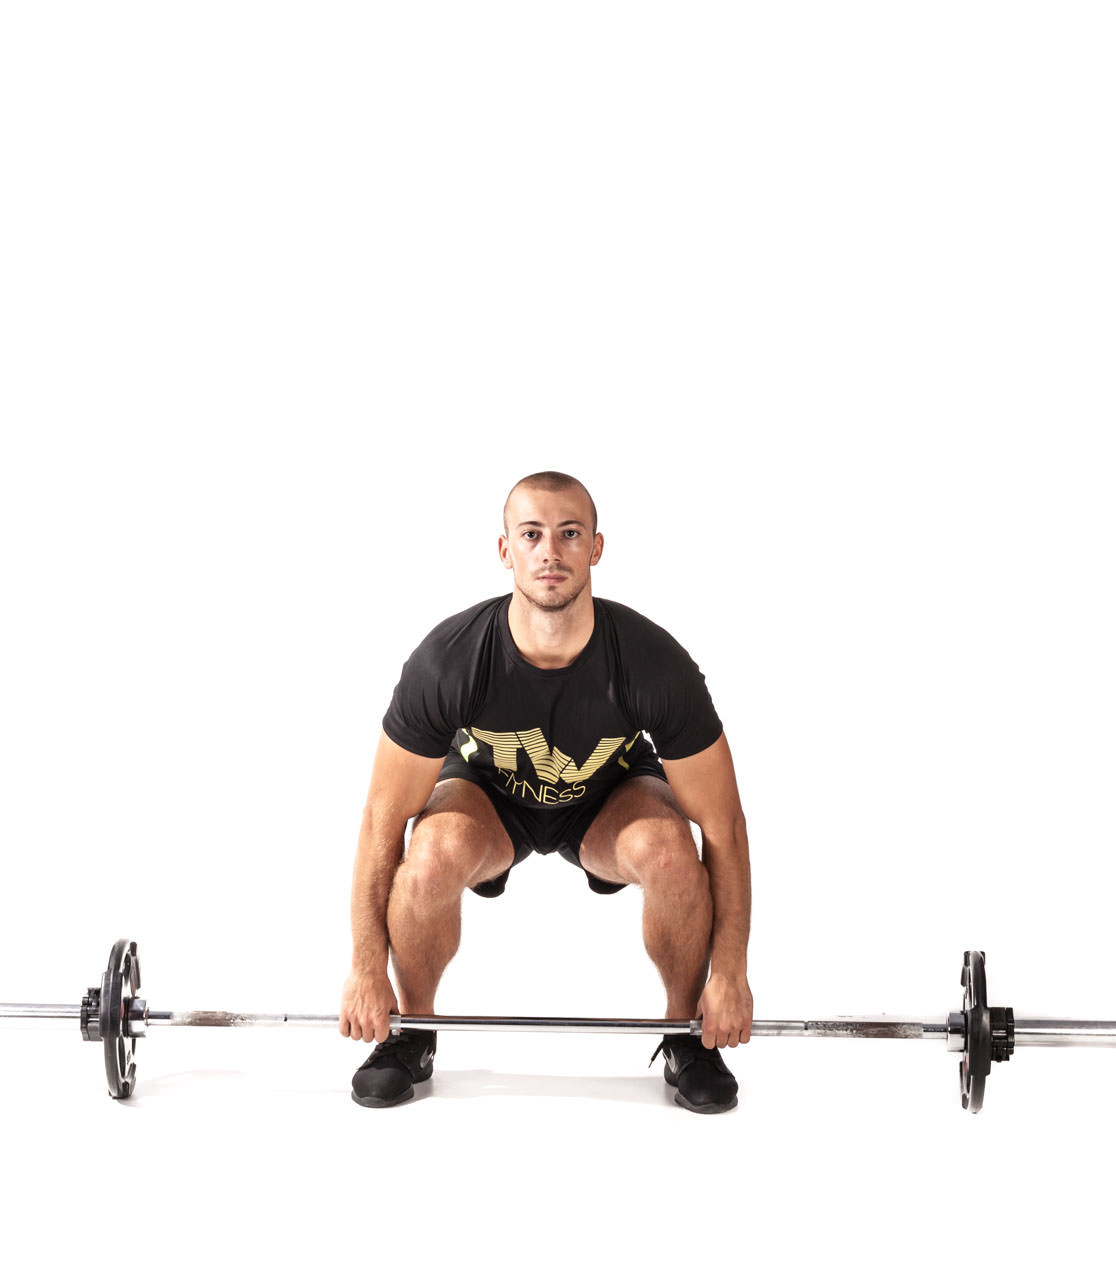 Barbell Clean frame #3